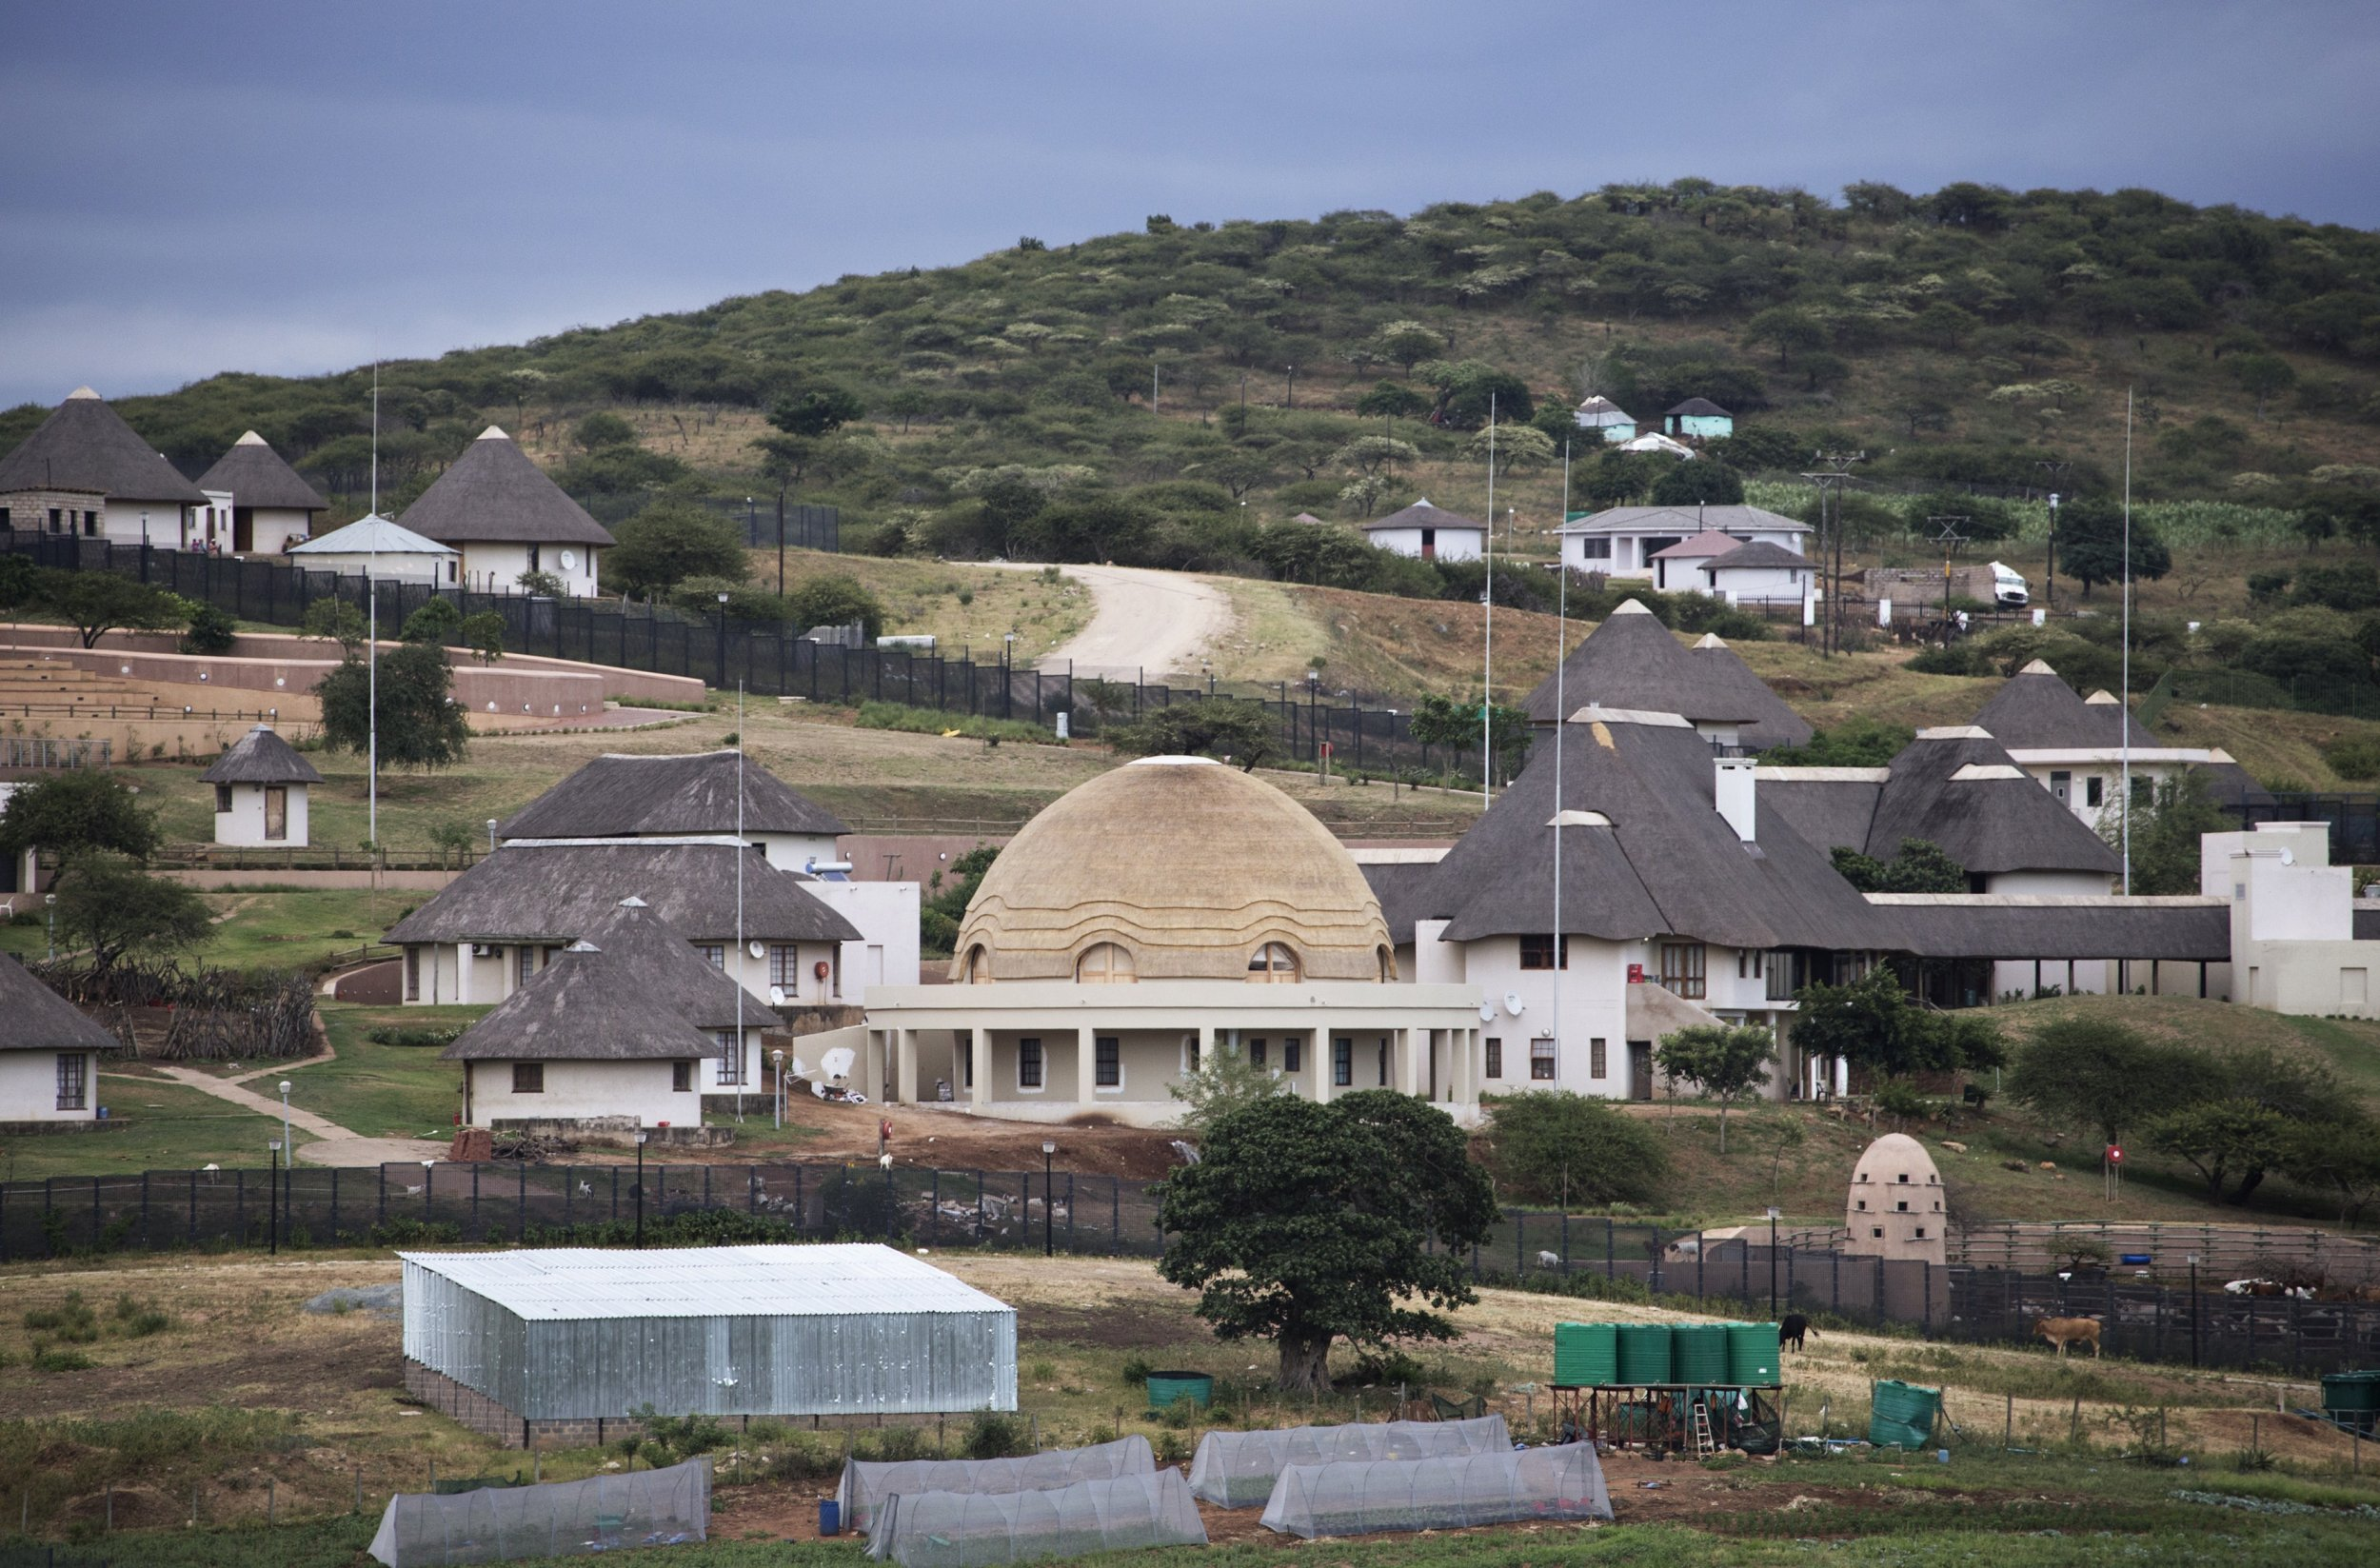 Jacob Zuma's Nkandla homestead in South Africa.